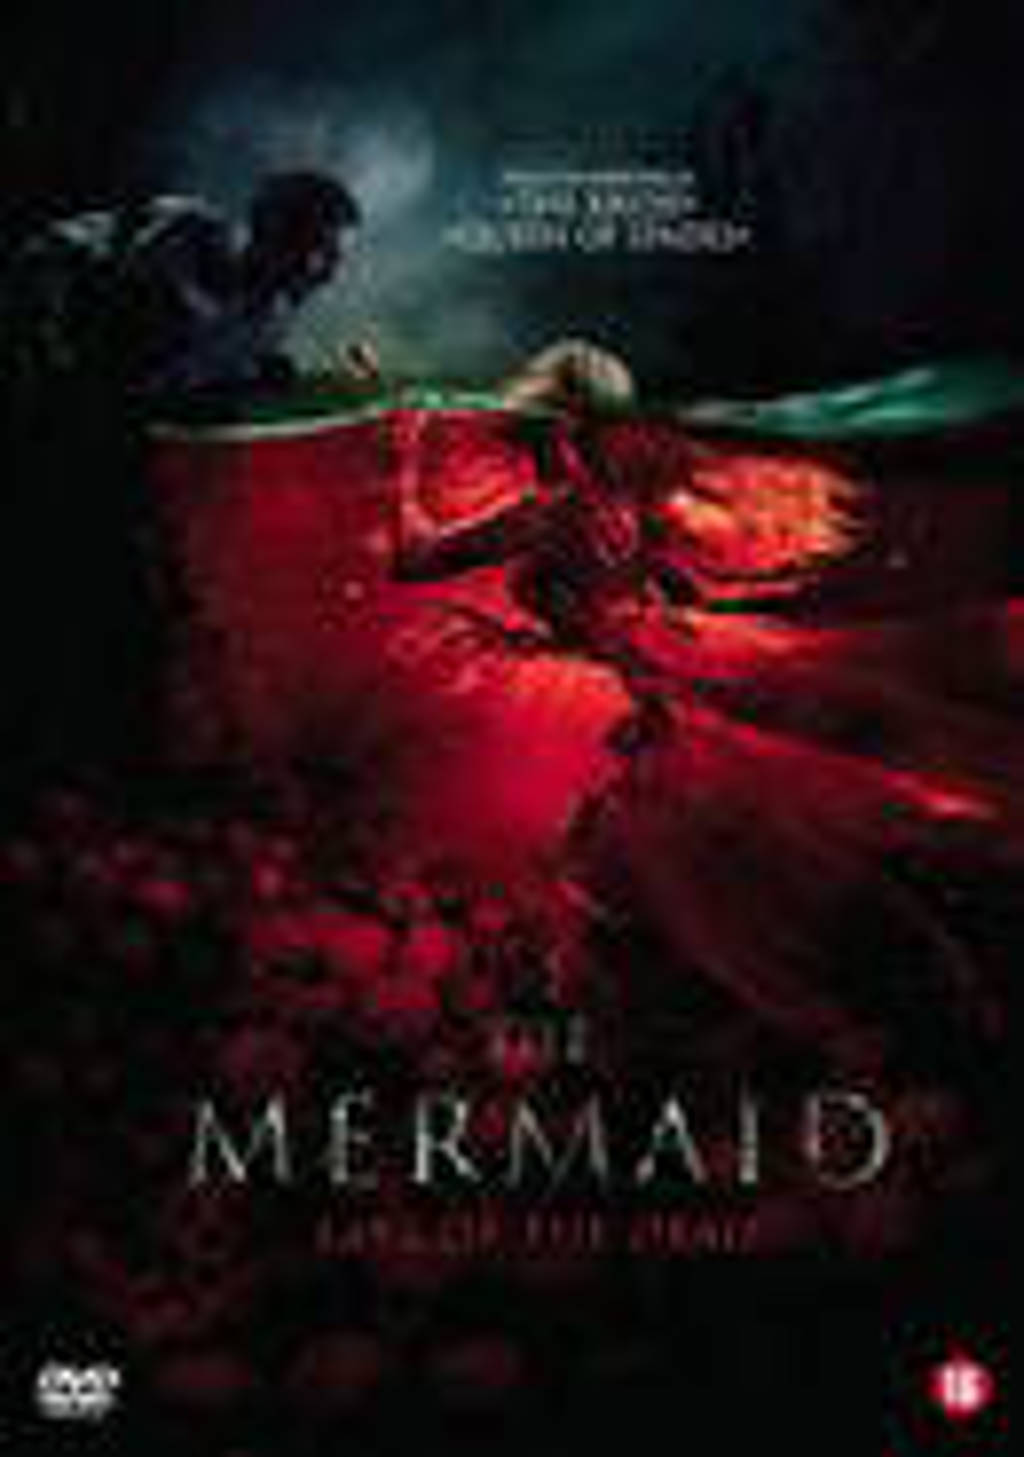 Mermaid - Lake of the dead (DVD)